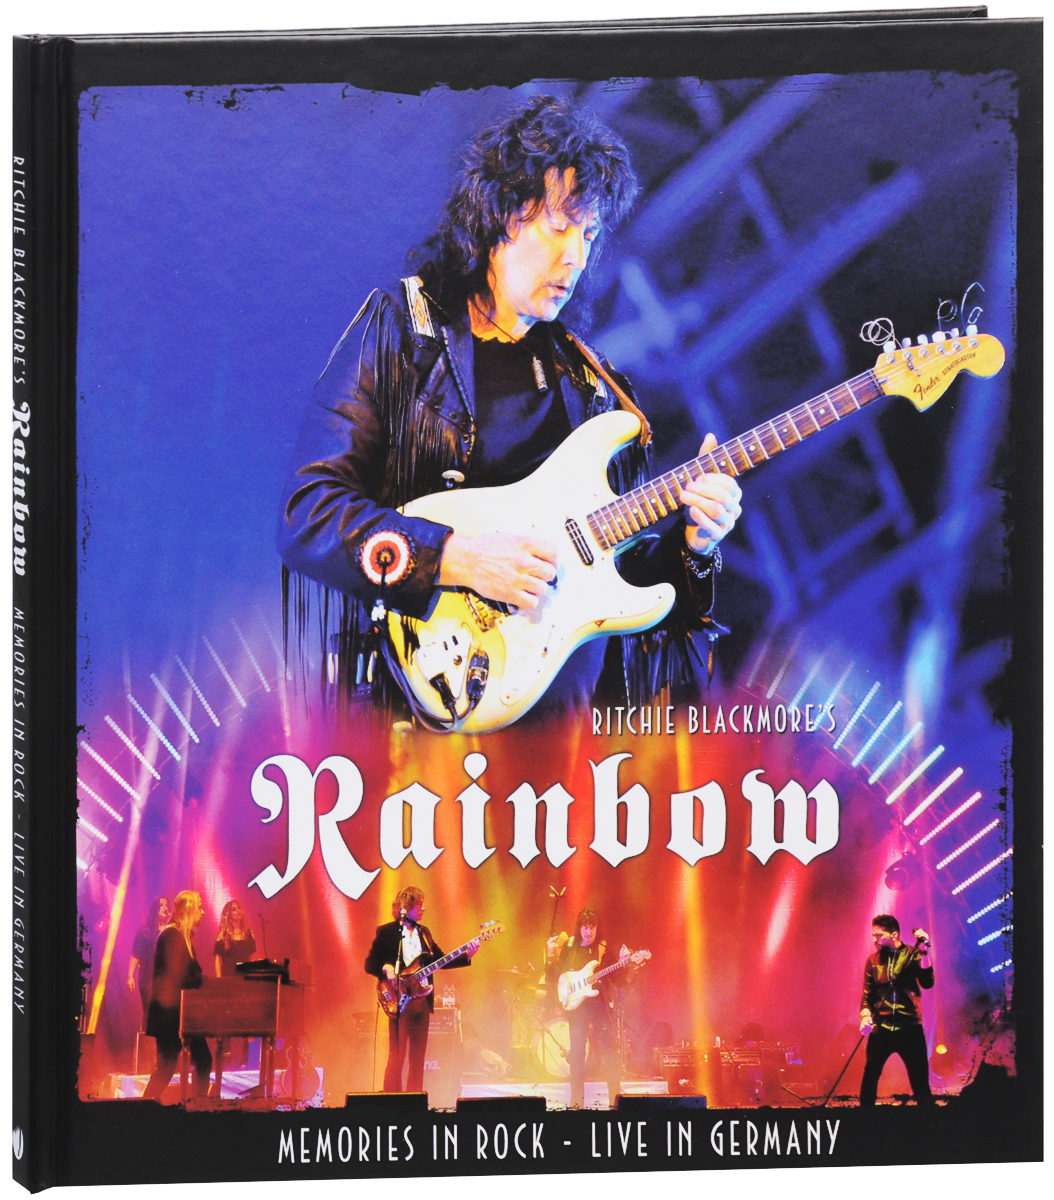 Ritchie Blackmore's Rainbow: Memories In Rock - Live In Germany (Bly-ray + DVD + 2 CD)